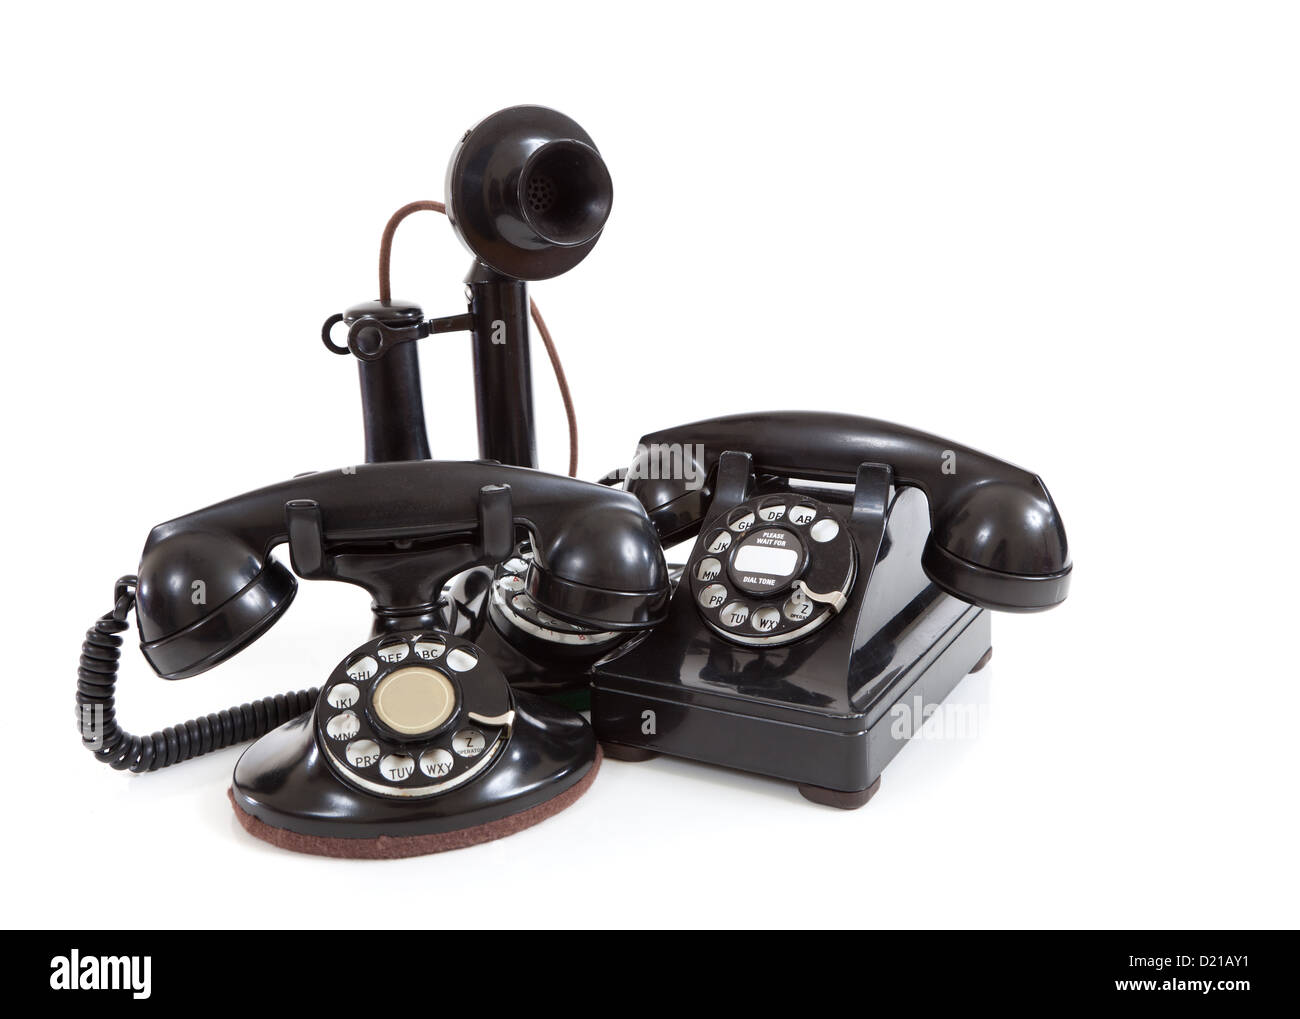 A group of vintage telephones on a white background - Stock Image